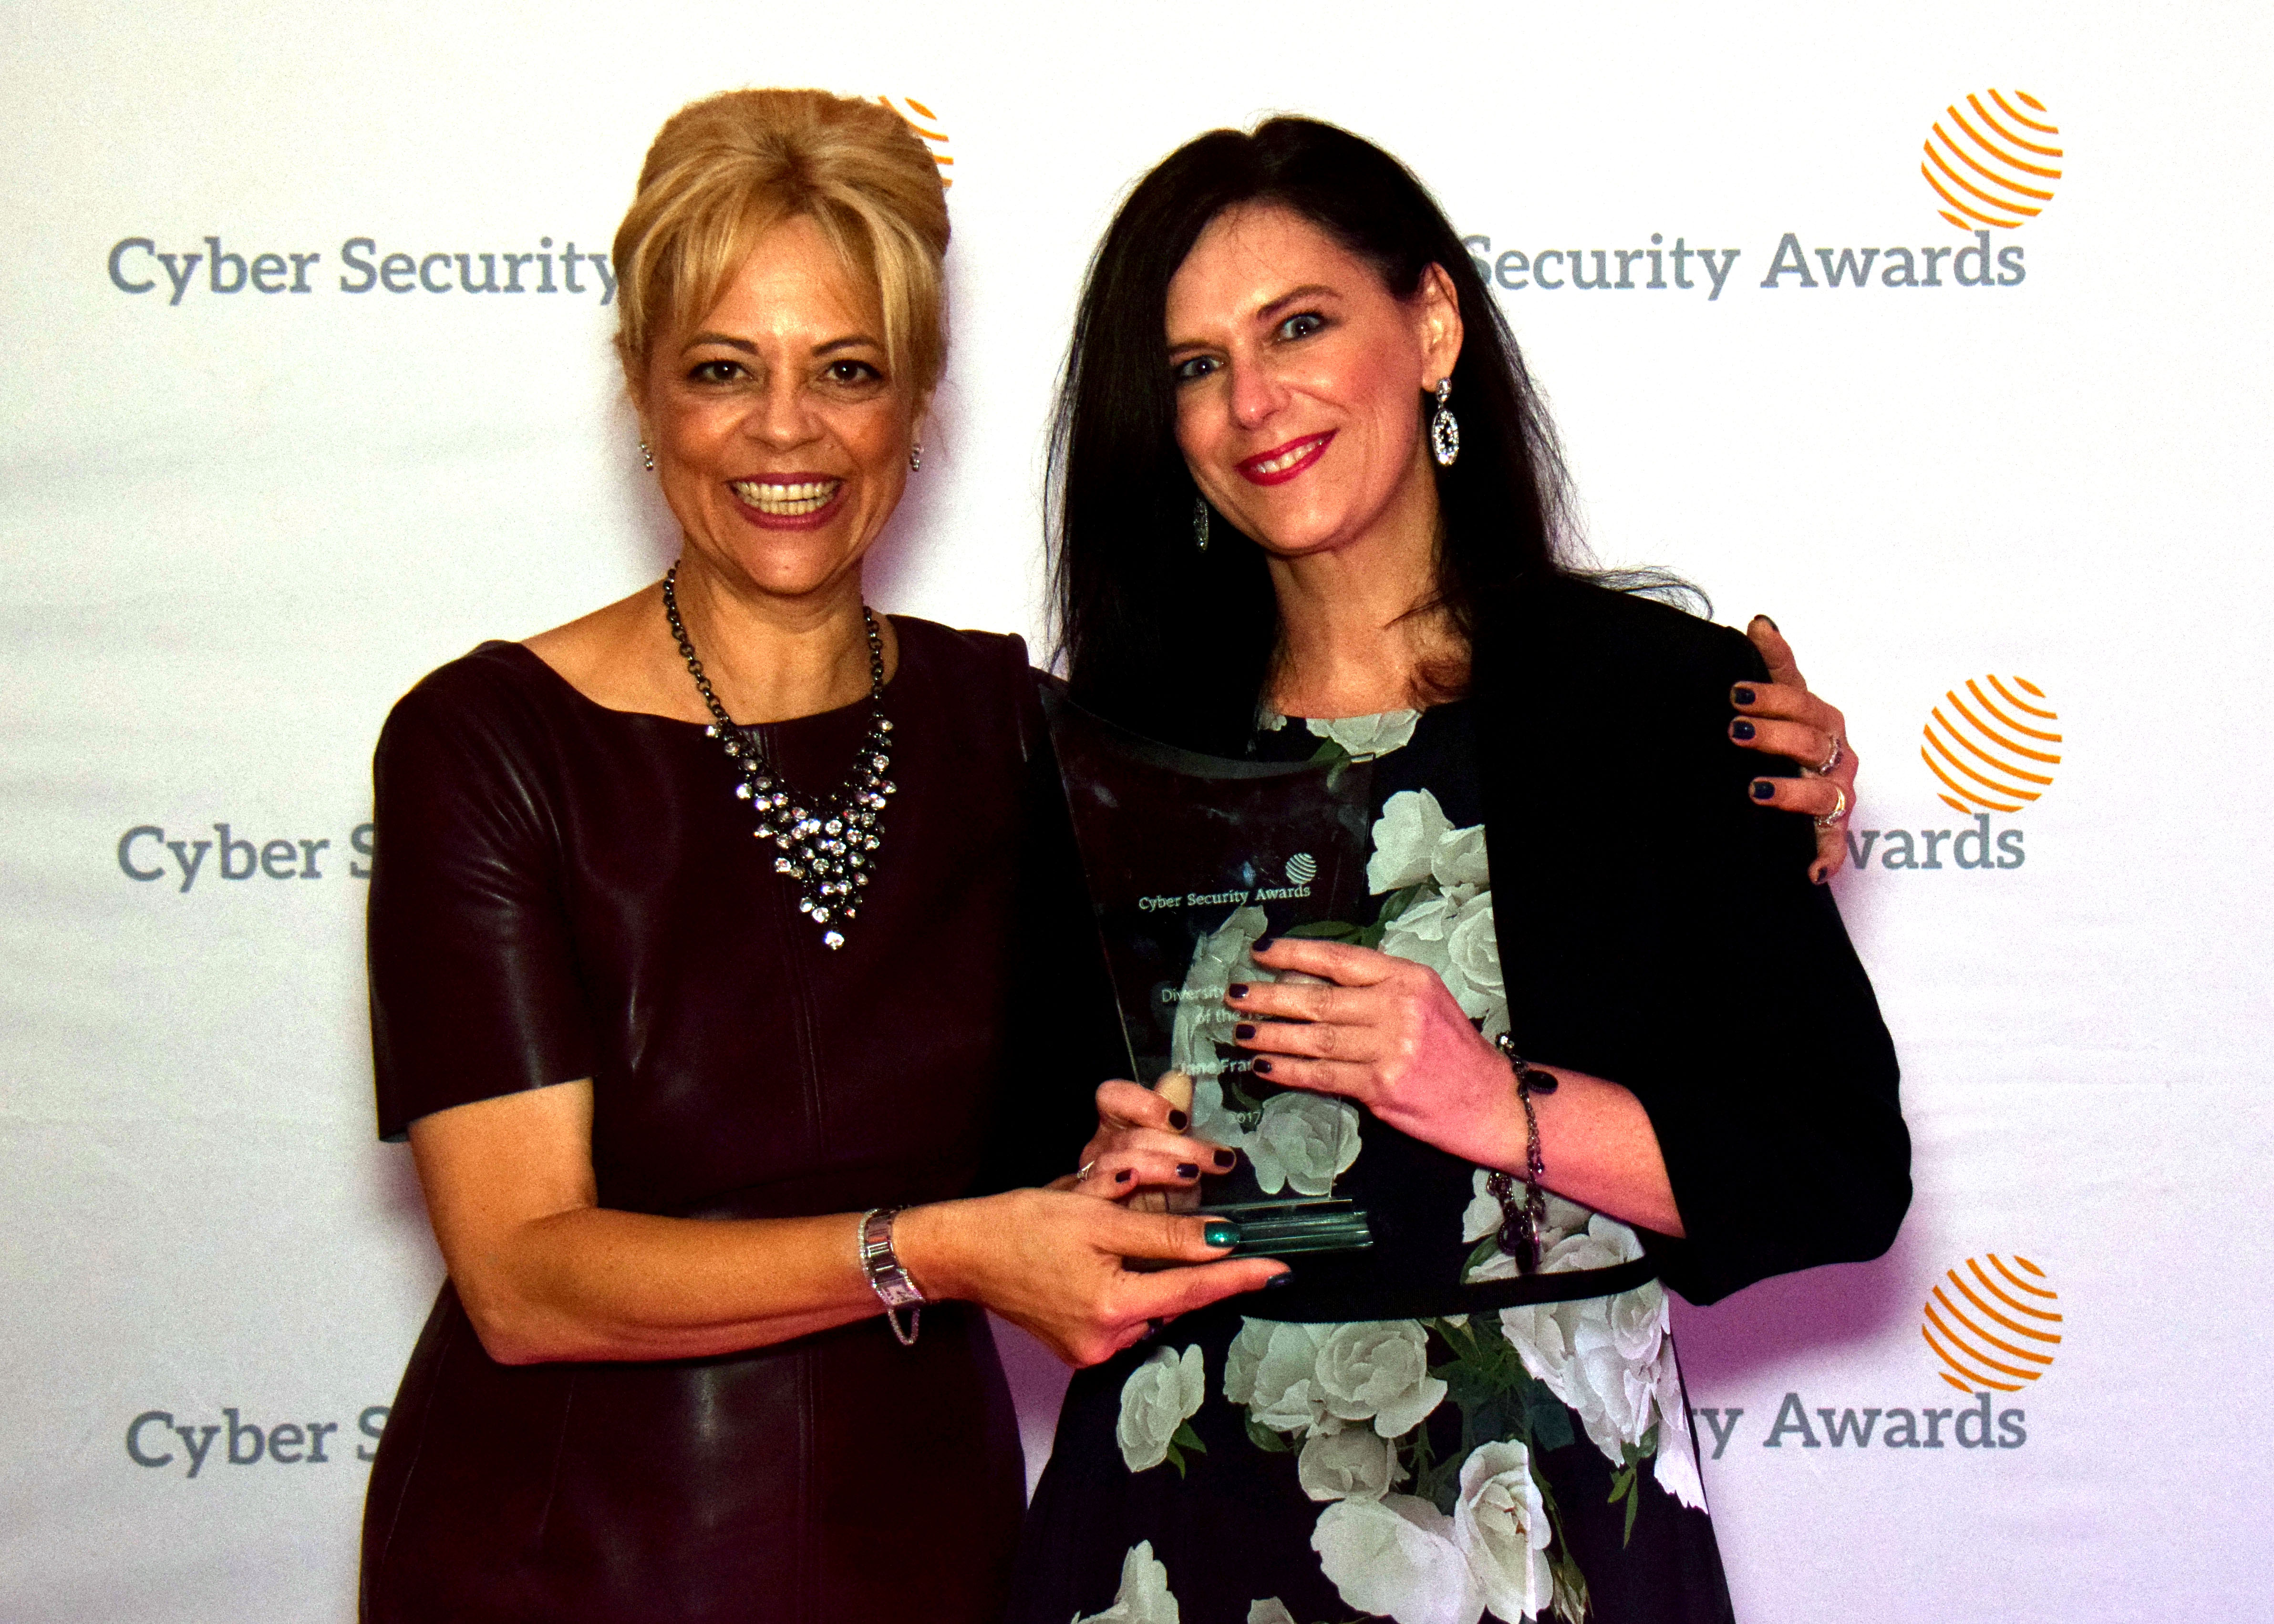 2017 Cyber Security Awards Diversity Champion of the Year Jane Frankland